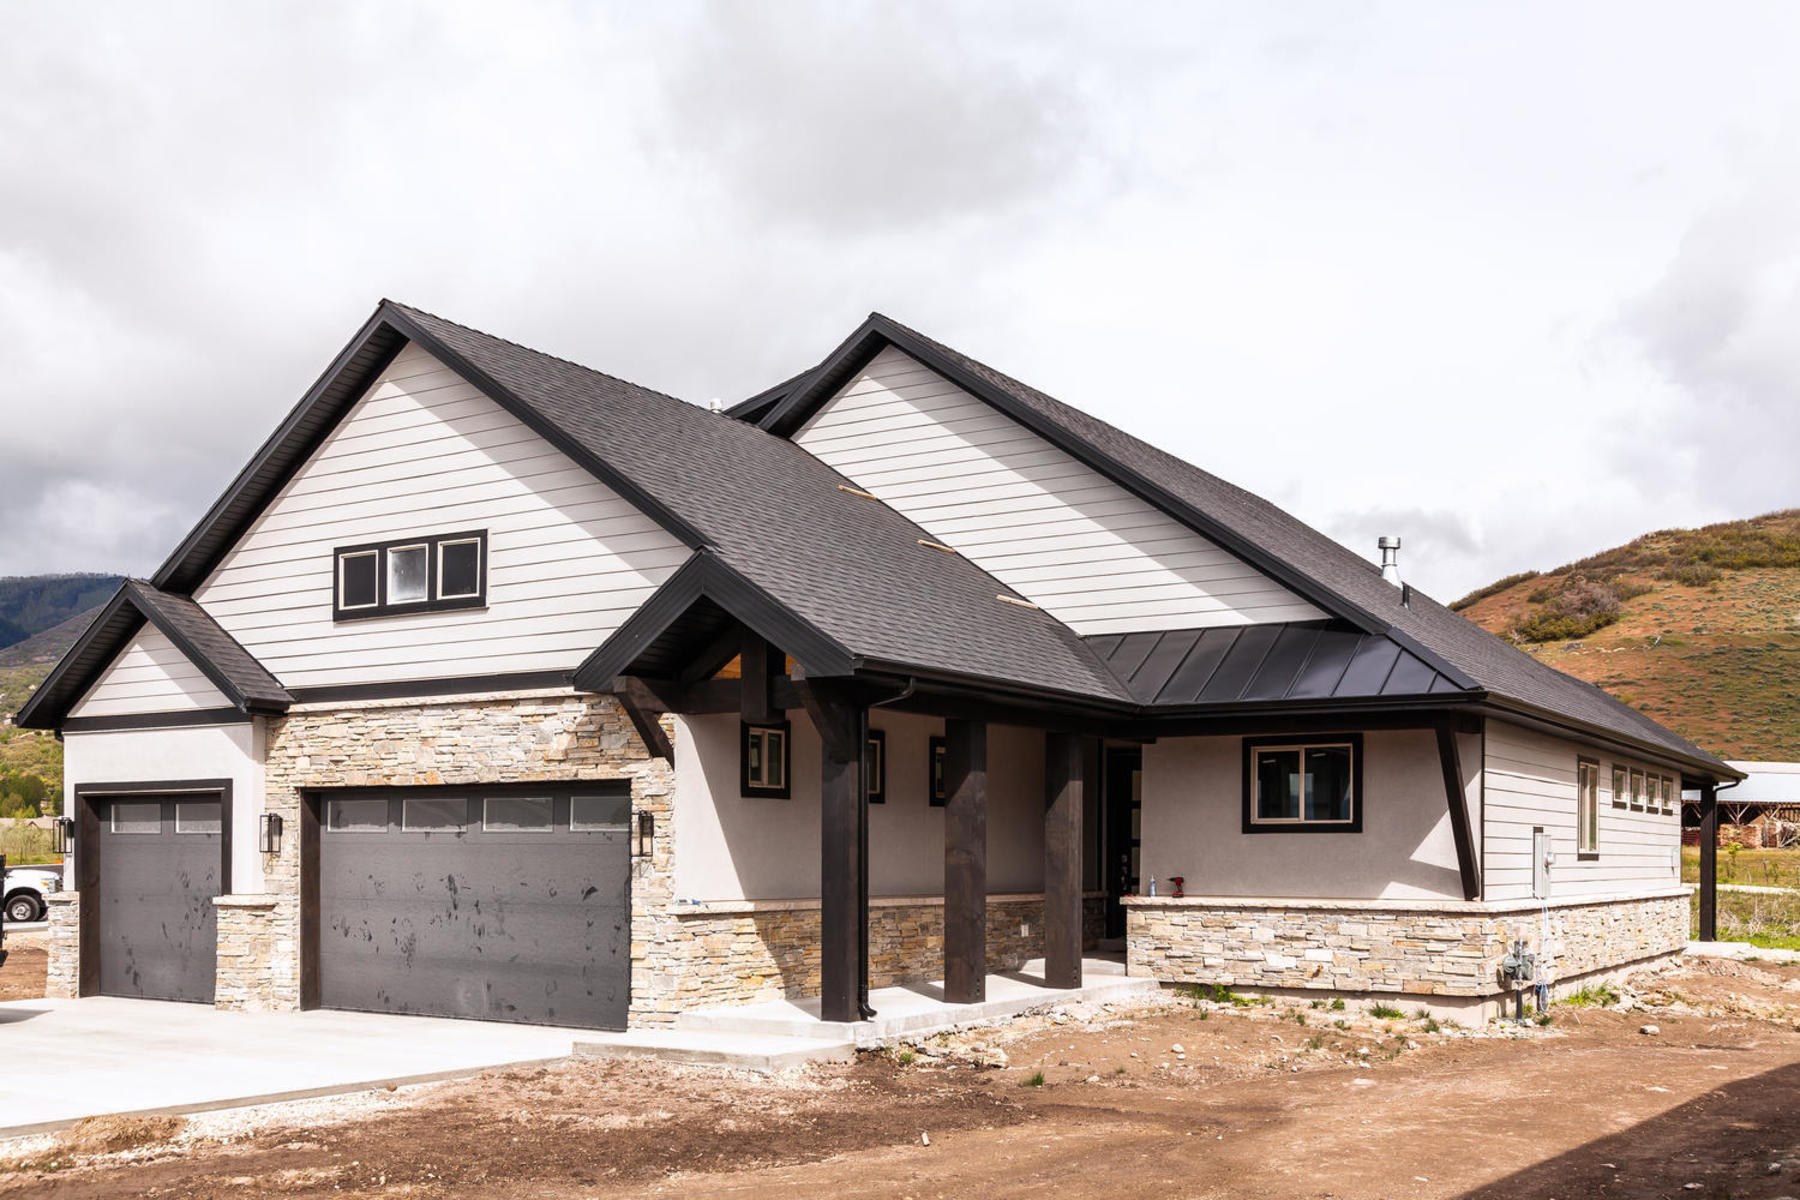 Single Family Homes for Sale at New Construction in Beautiful Midway Lot #45 N Jerry Gertsch Lane Midway, Utah 84049 United States